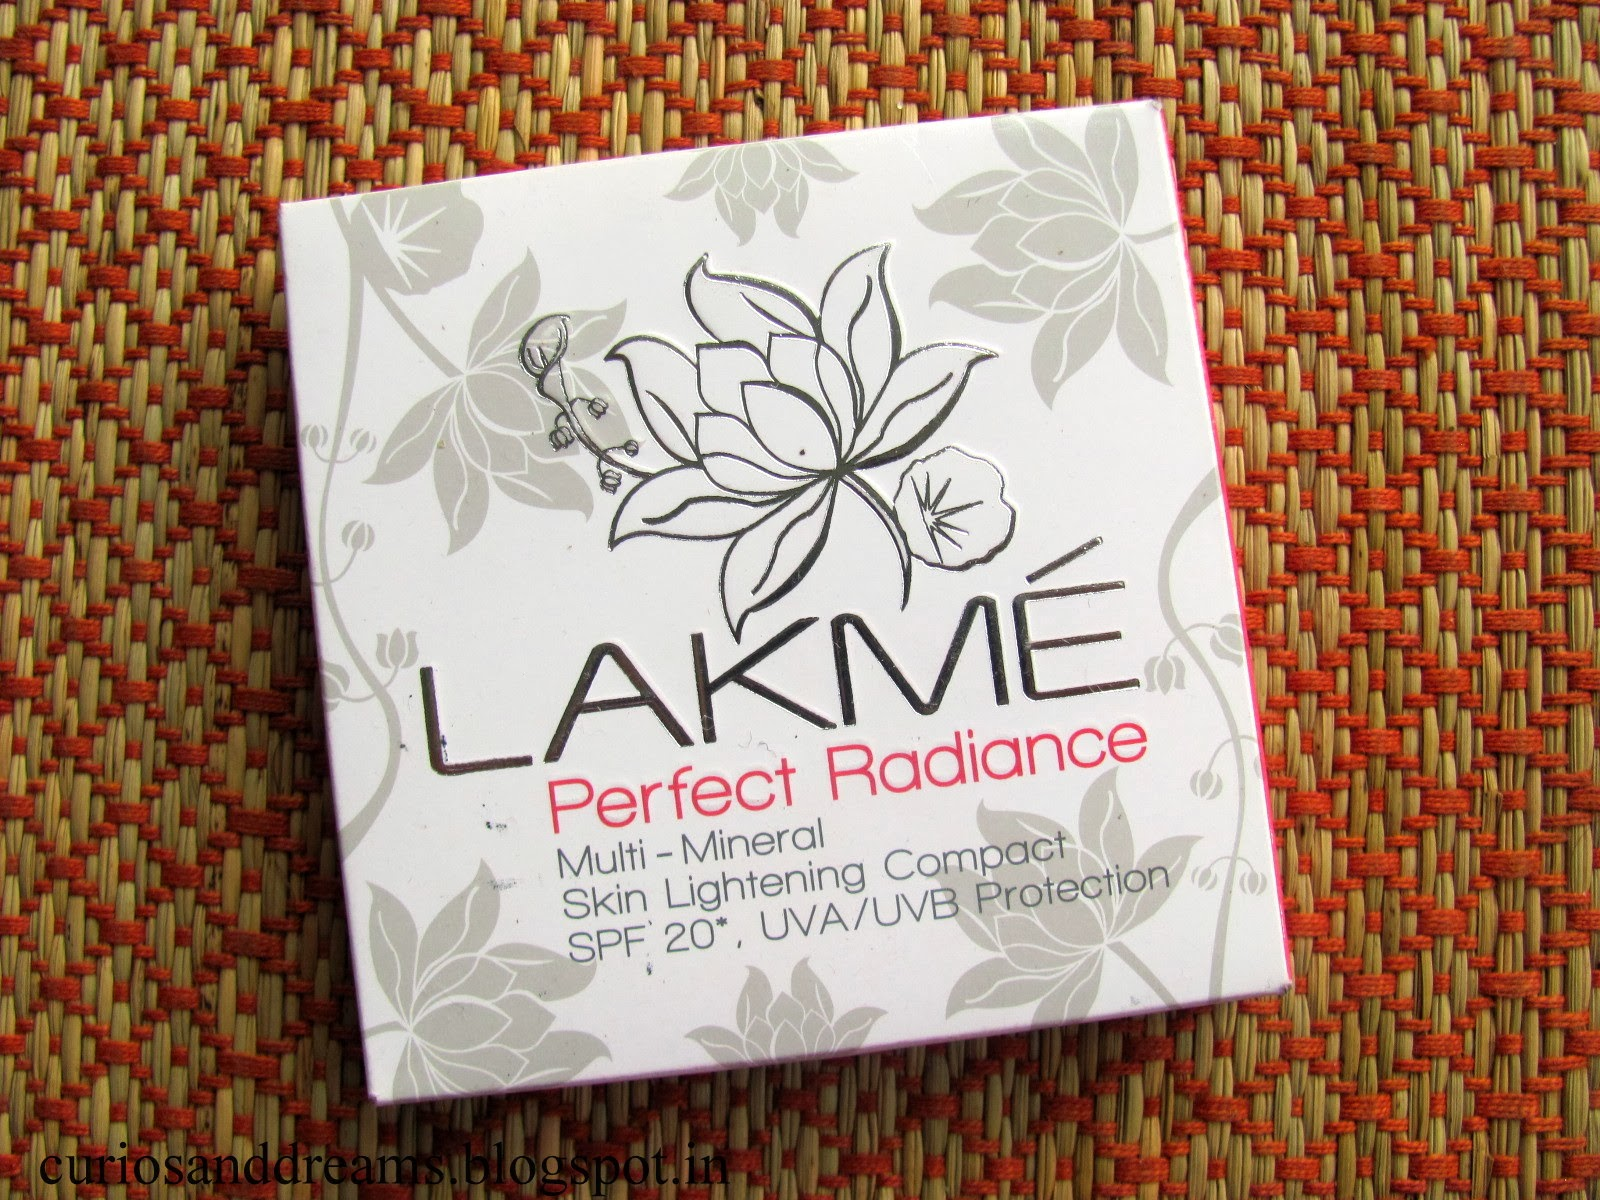 Lakme Perfect Radiance Multi Mineral Compact Review